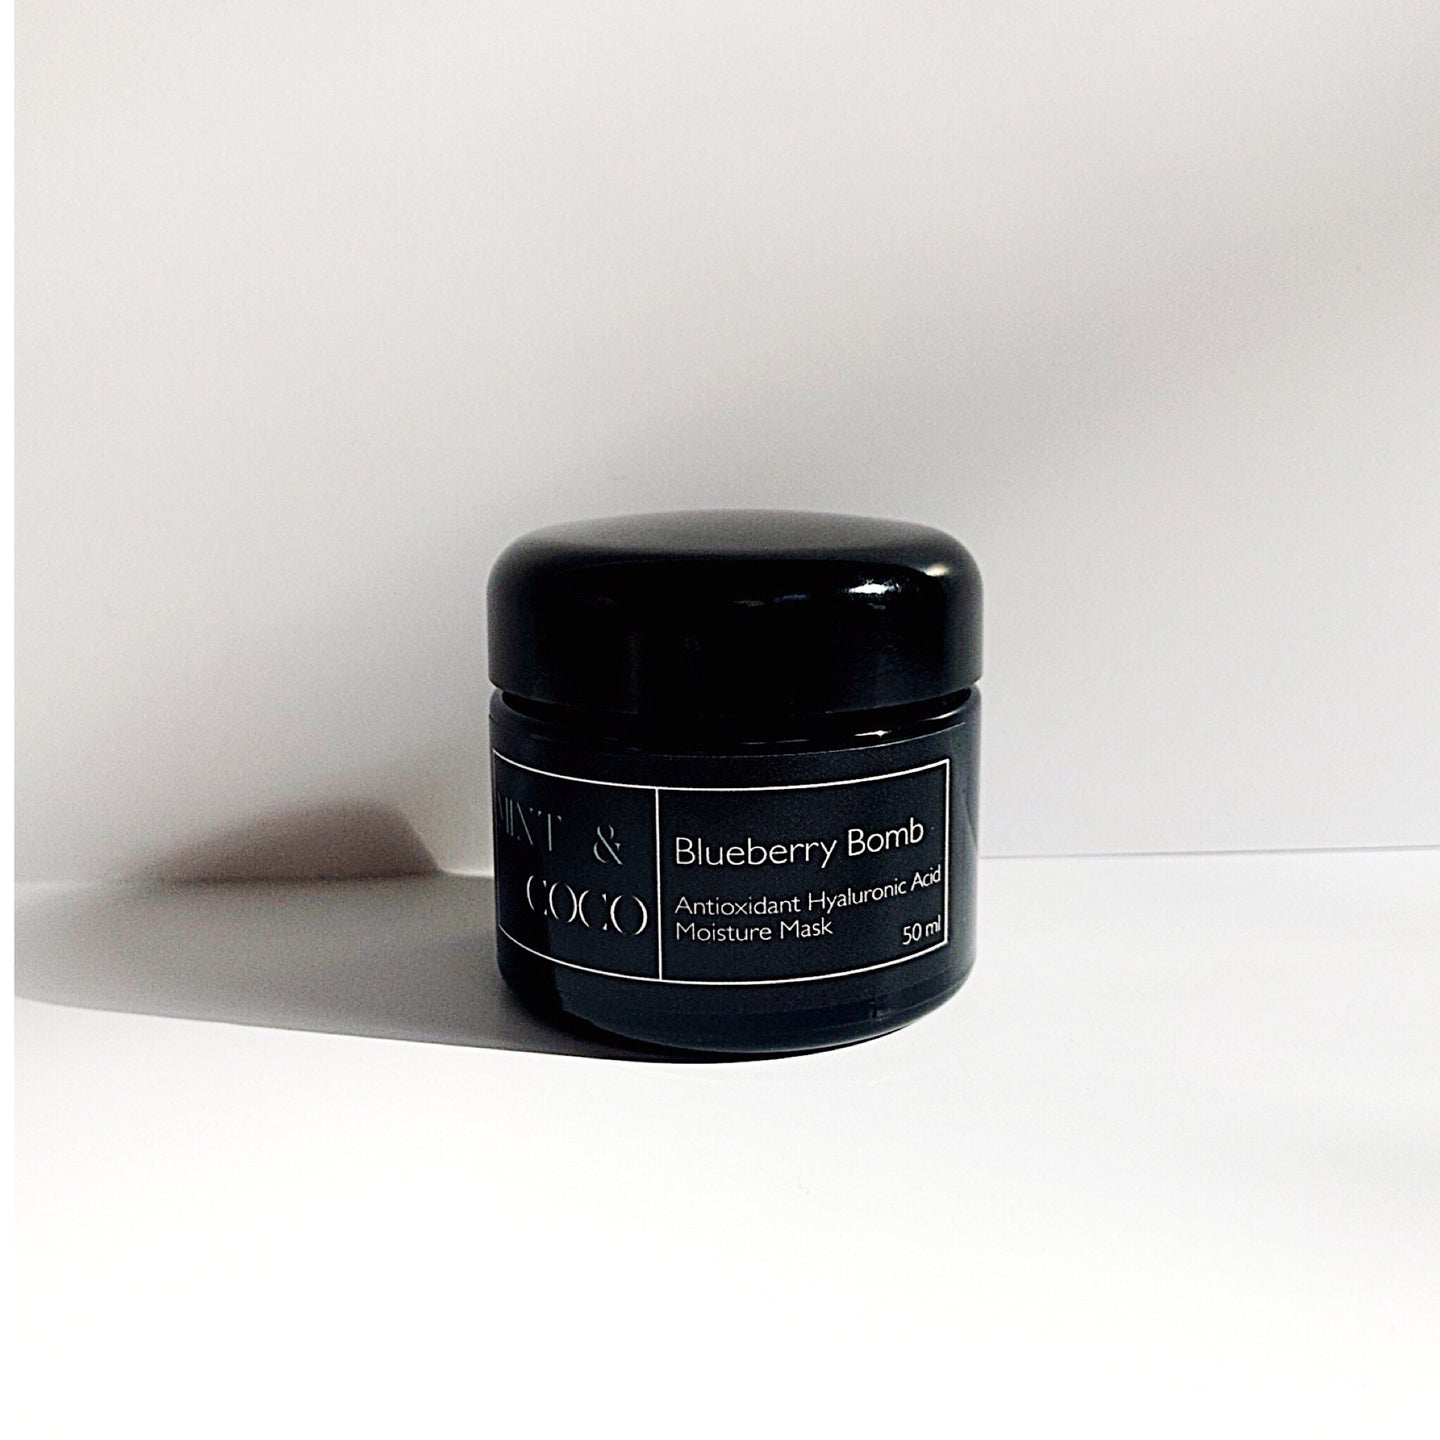 BLUEBERRY BOMB | hyaluronic acid antioxidant moisture mask